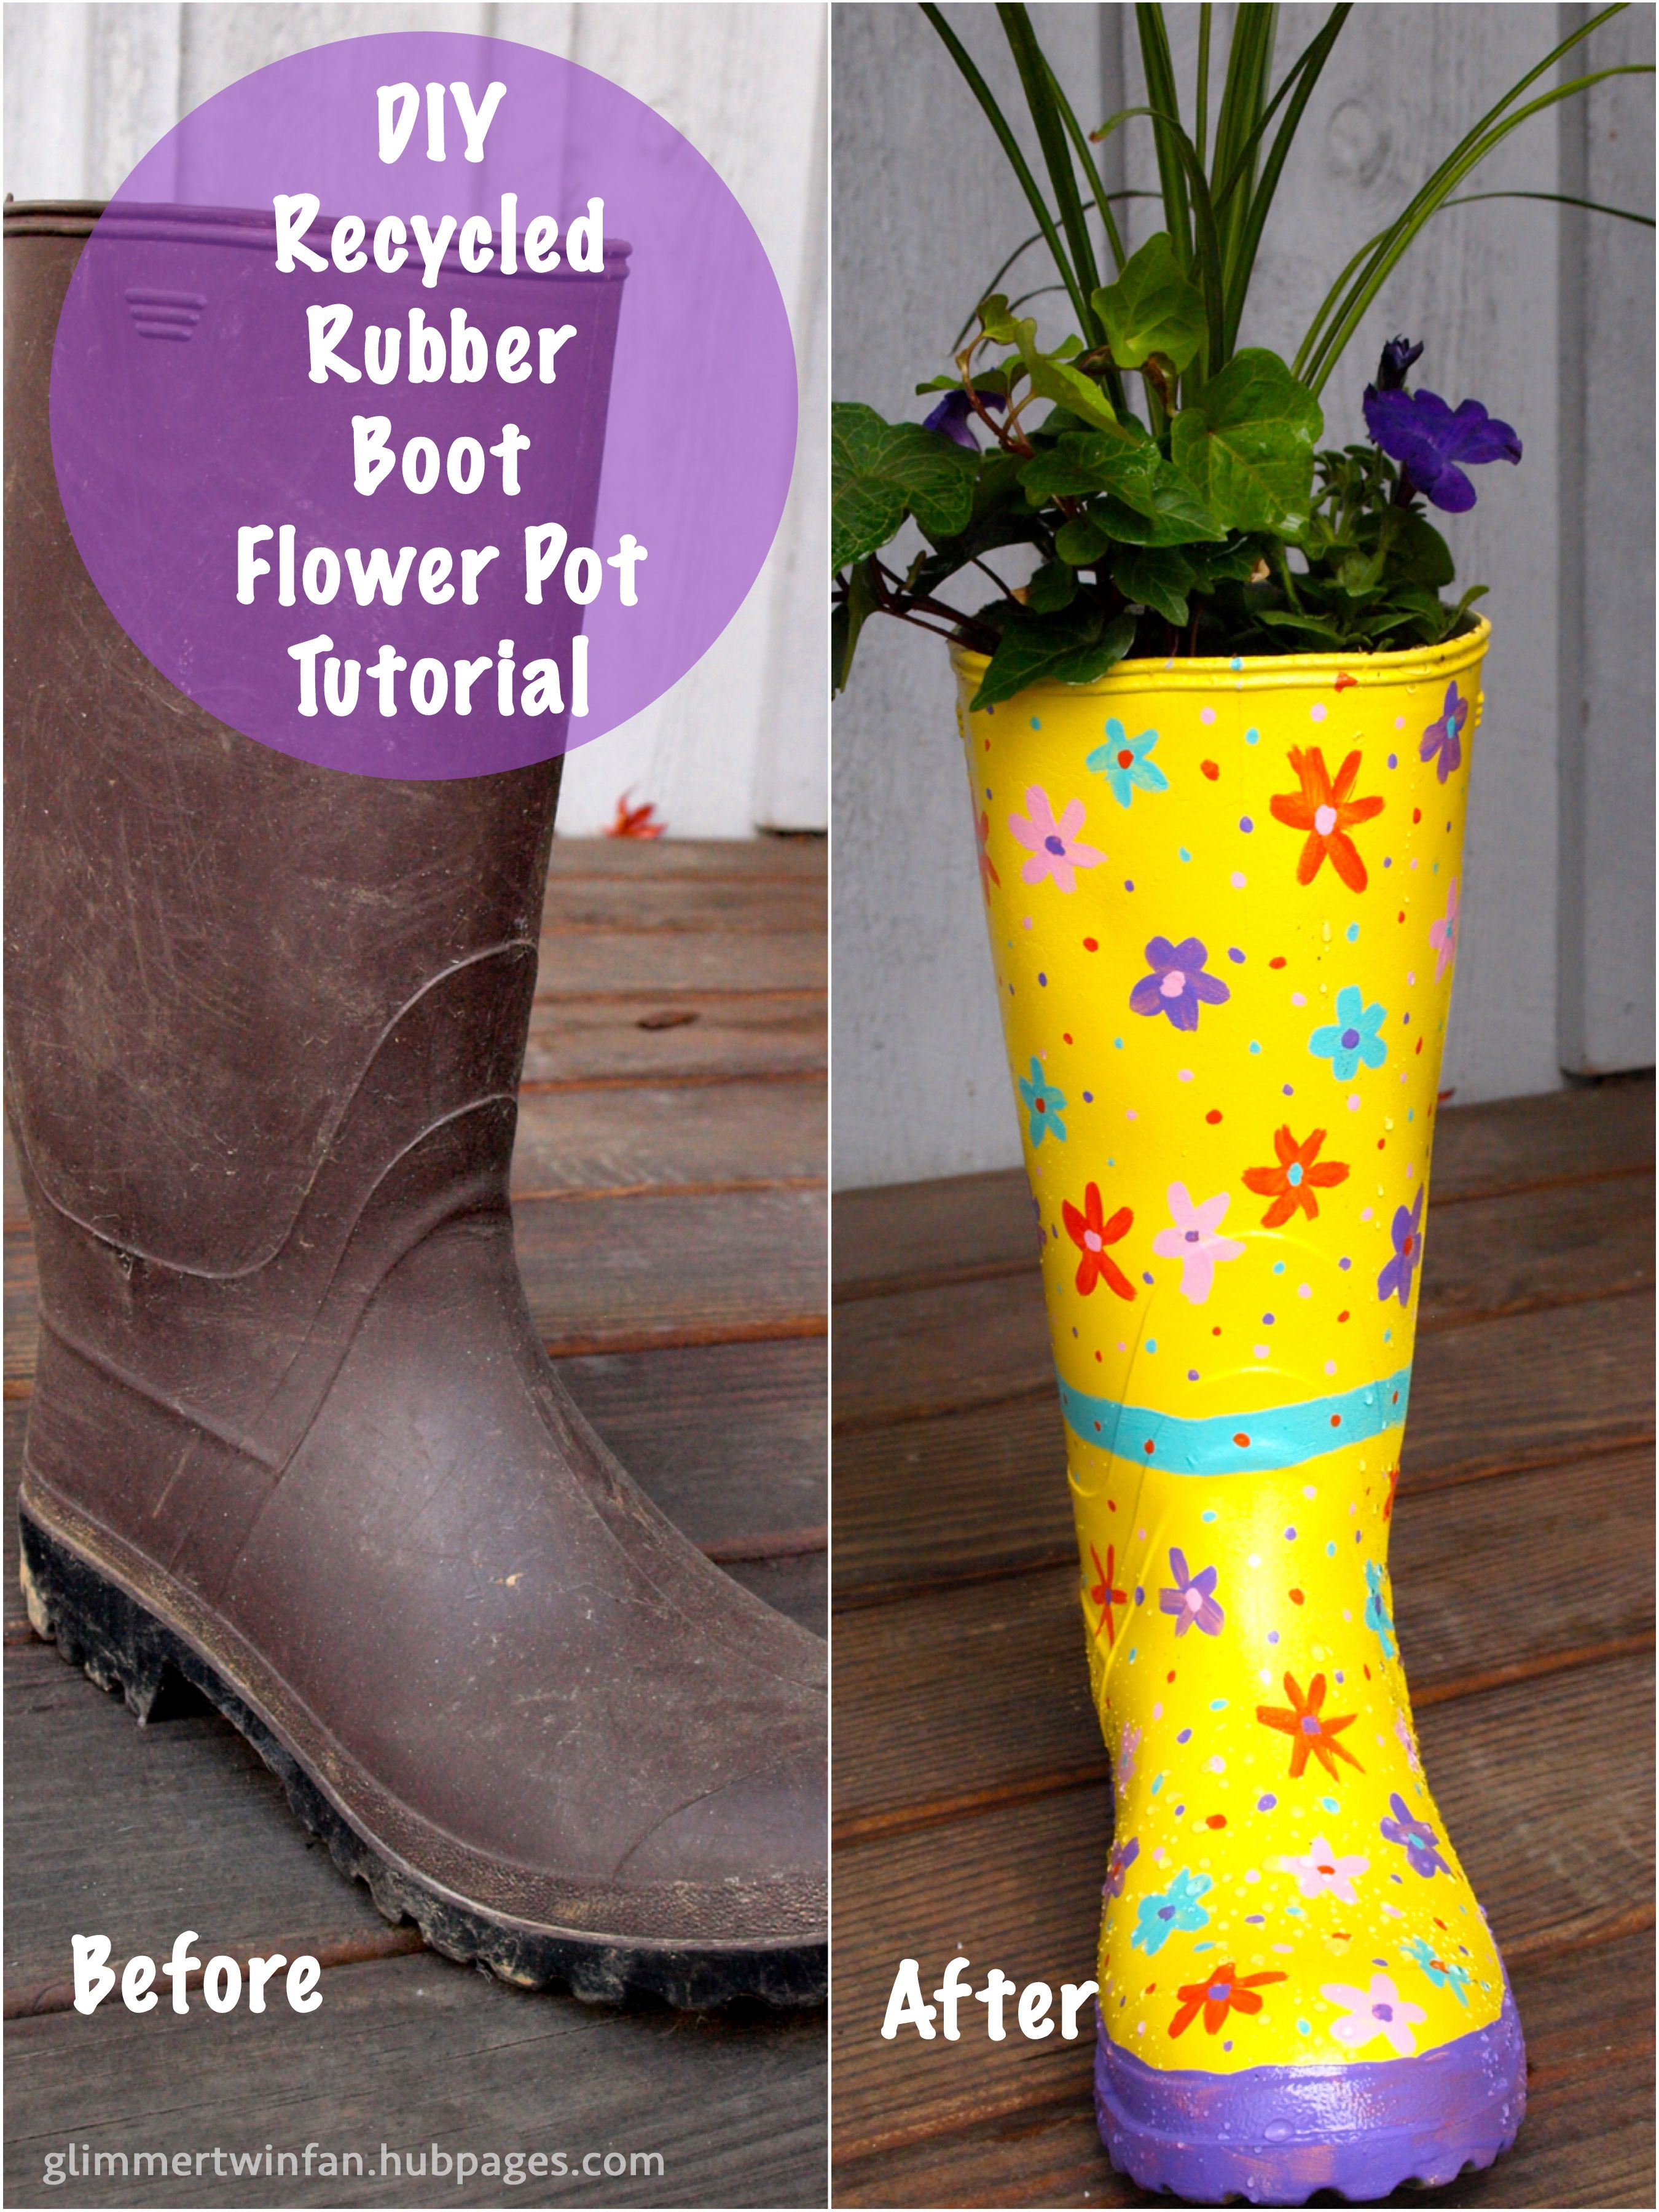 how to make a flower pot out of a recycled rubber boot